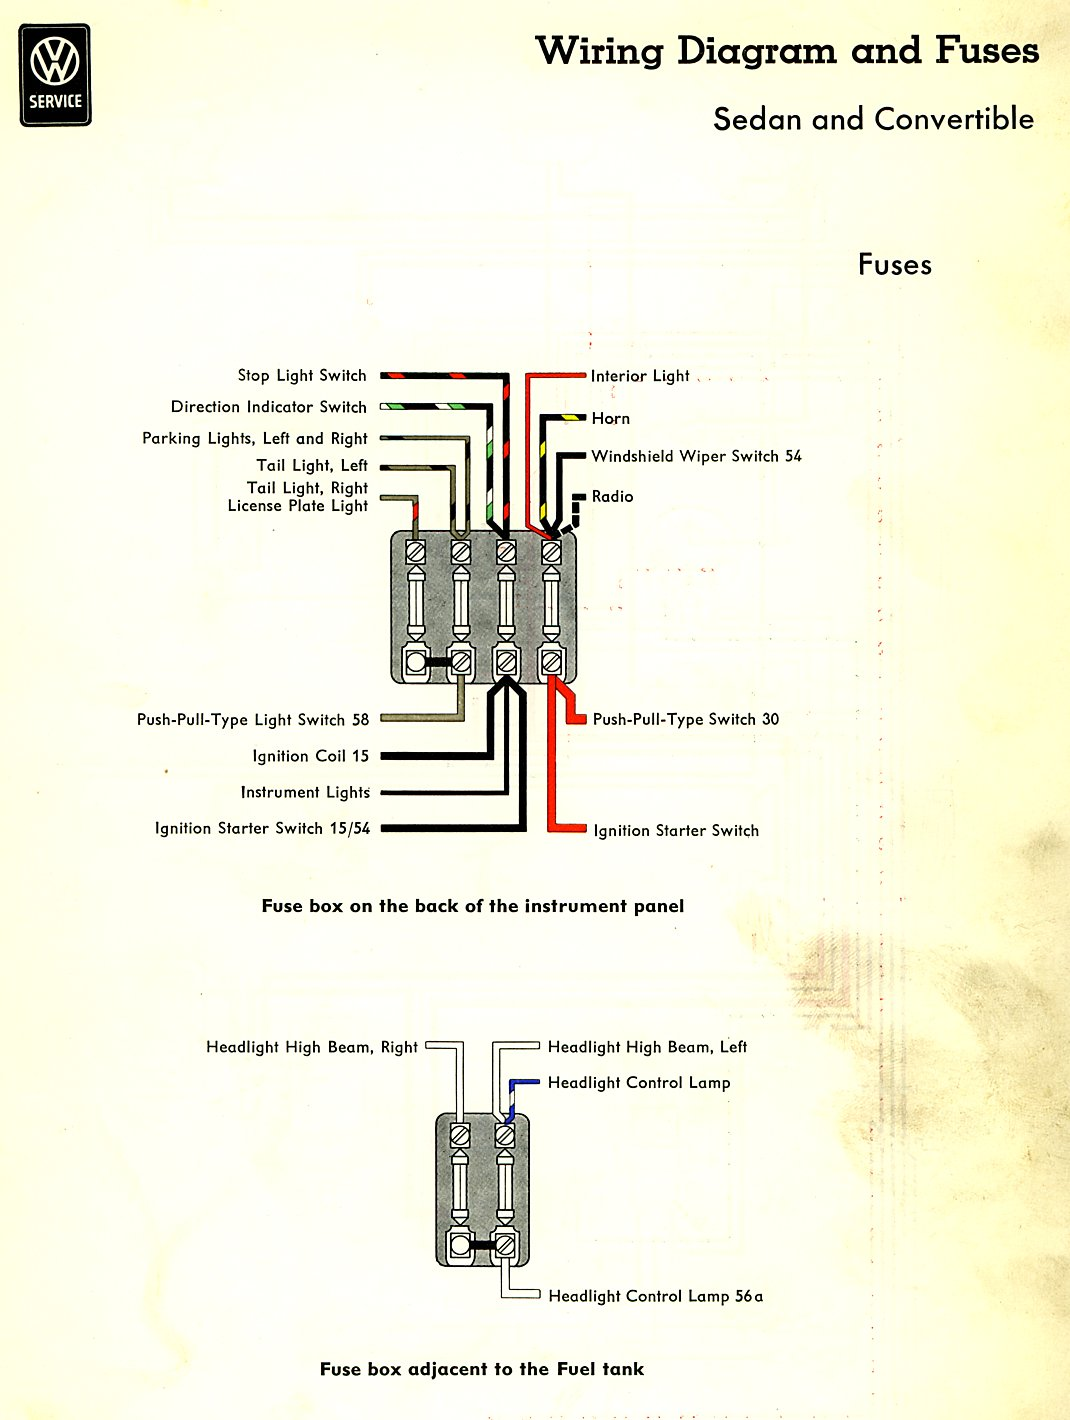 bug_58_fuses thesamba com type 1 wiring diagrams 1974 super beetle fuse diagram at crackthecode.co